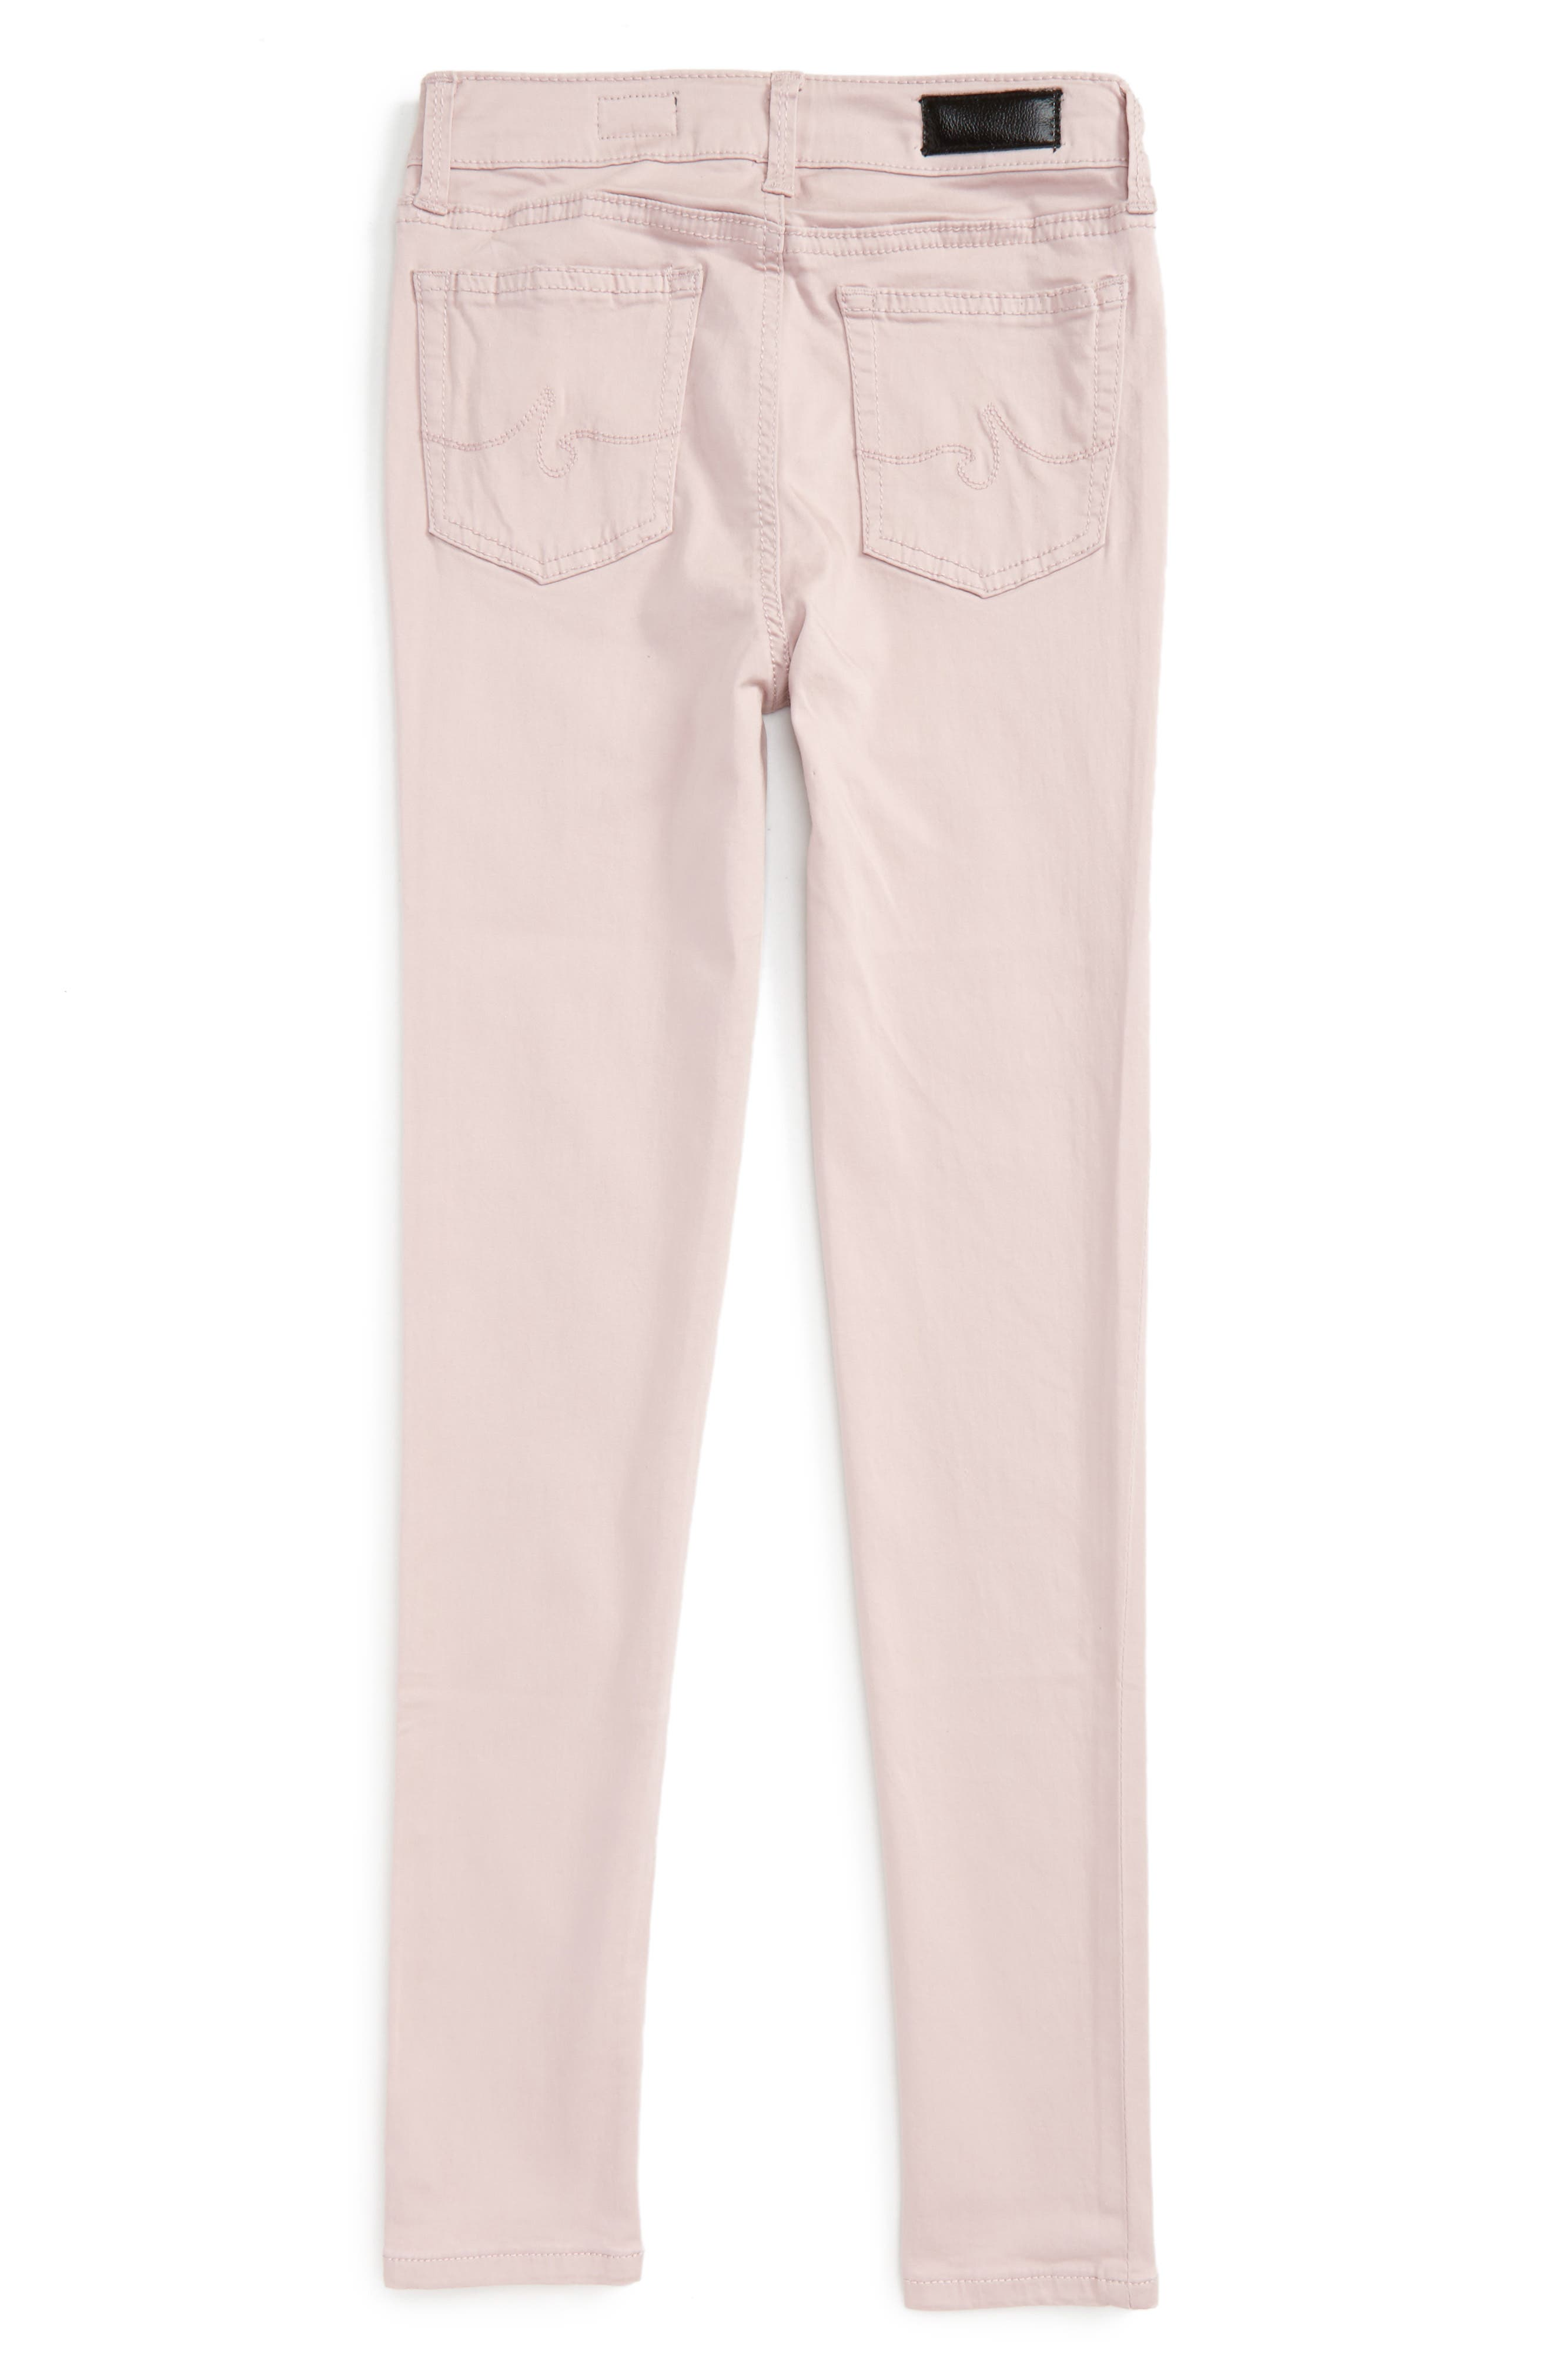 Twiggy Ankle Skinny Jeans,                             Alternate thumbnail 2, color,                             Light Pink